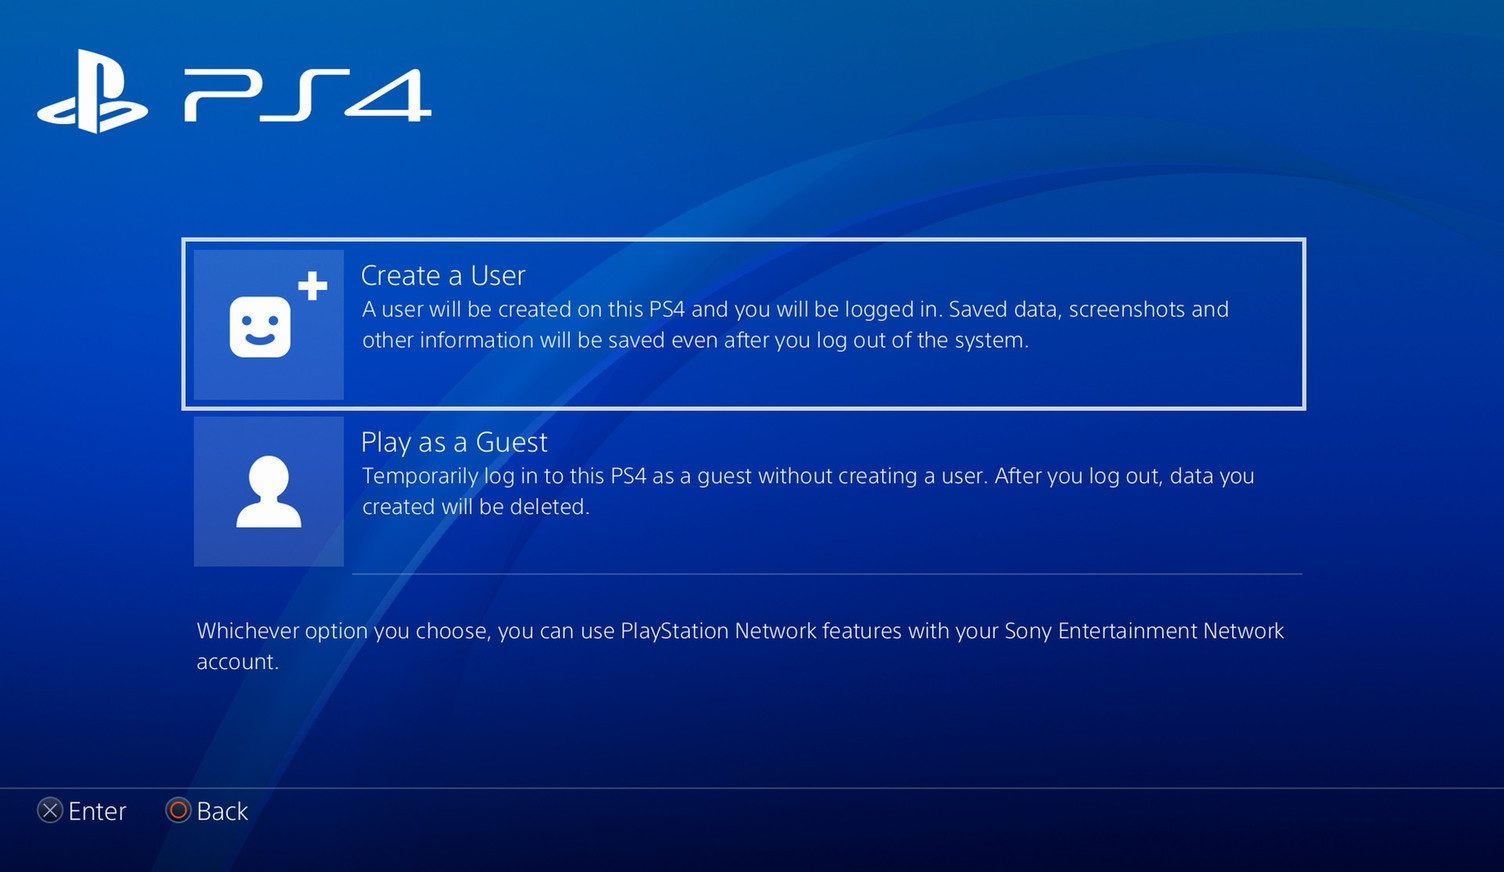 PS4 Add guest Account